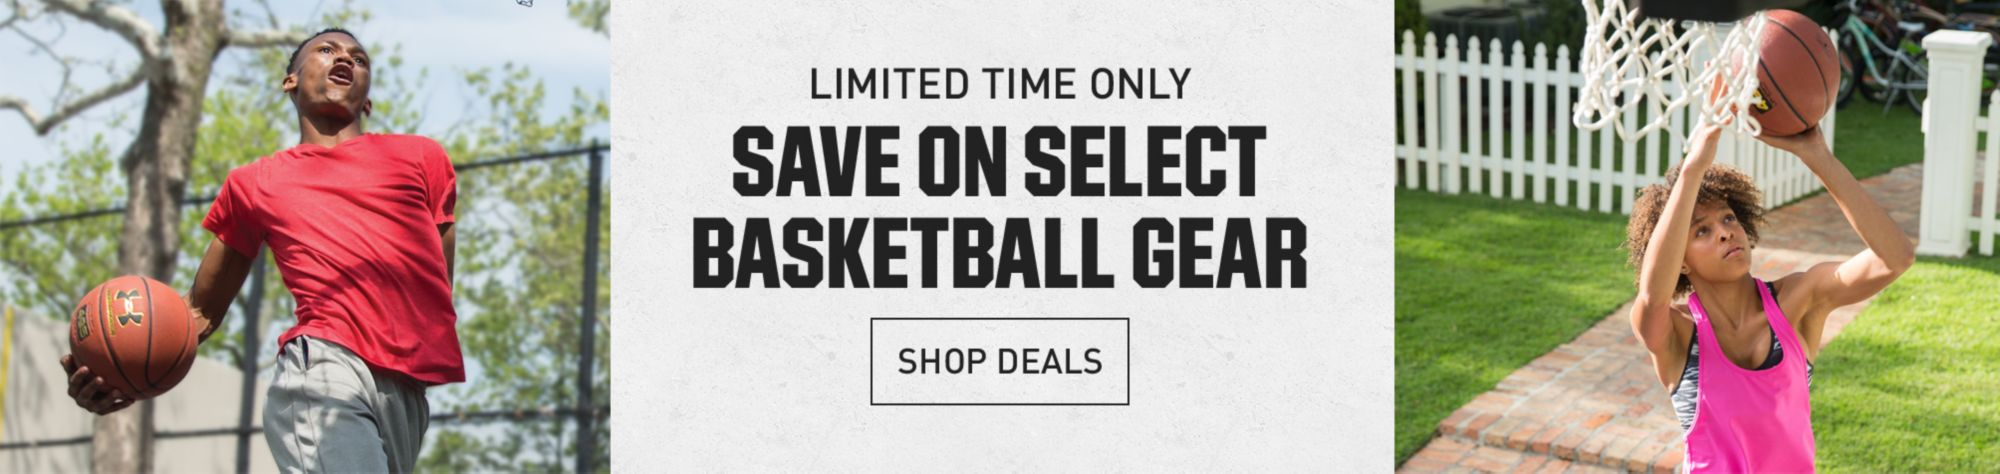 Limited Time Only!  Save on Select Basketball Gear Shop Deals